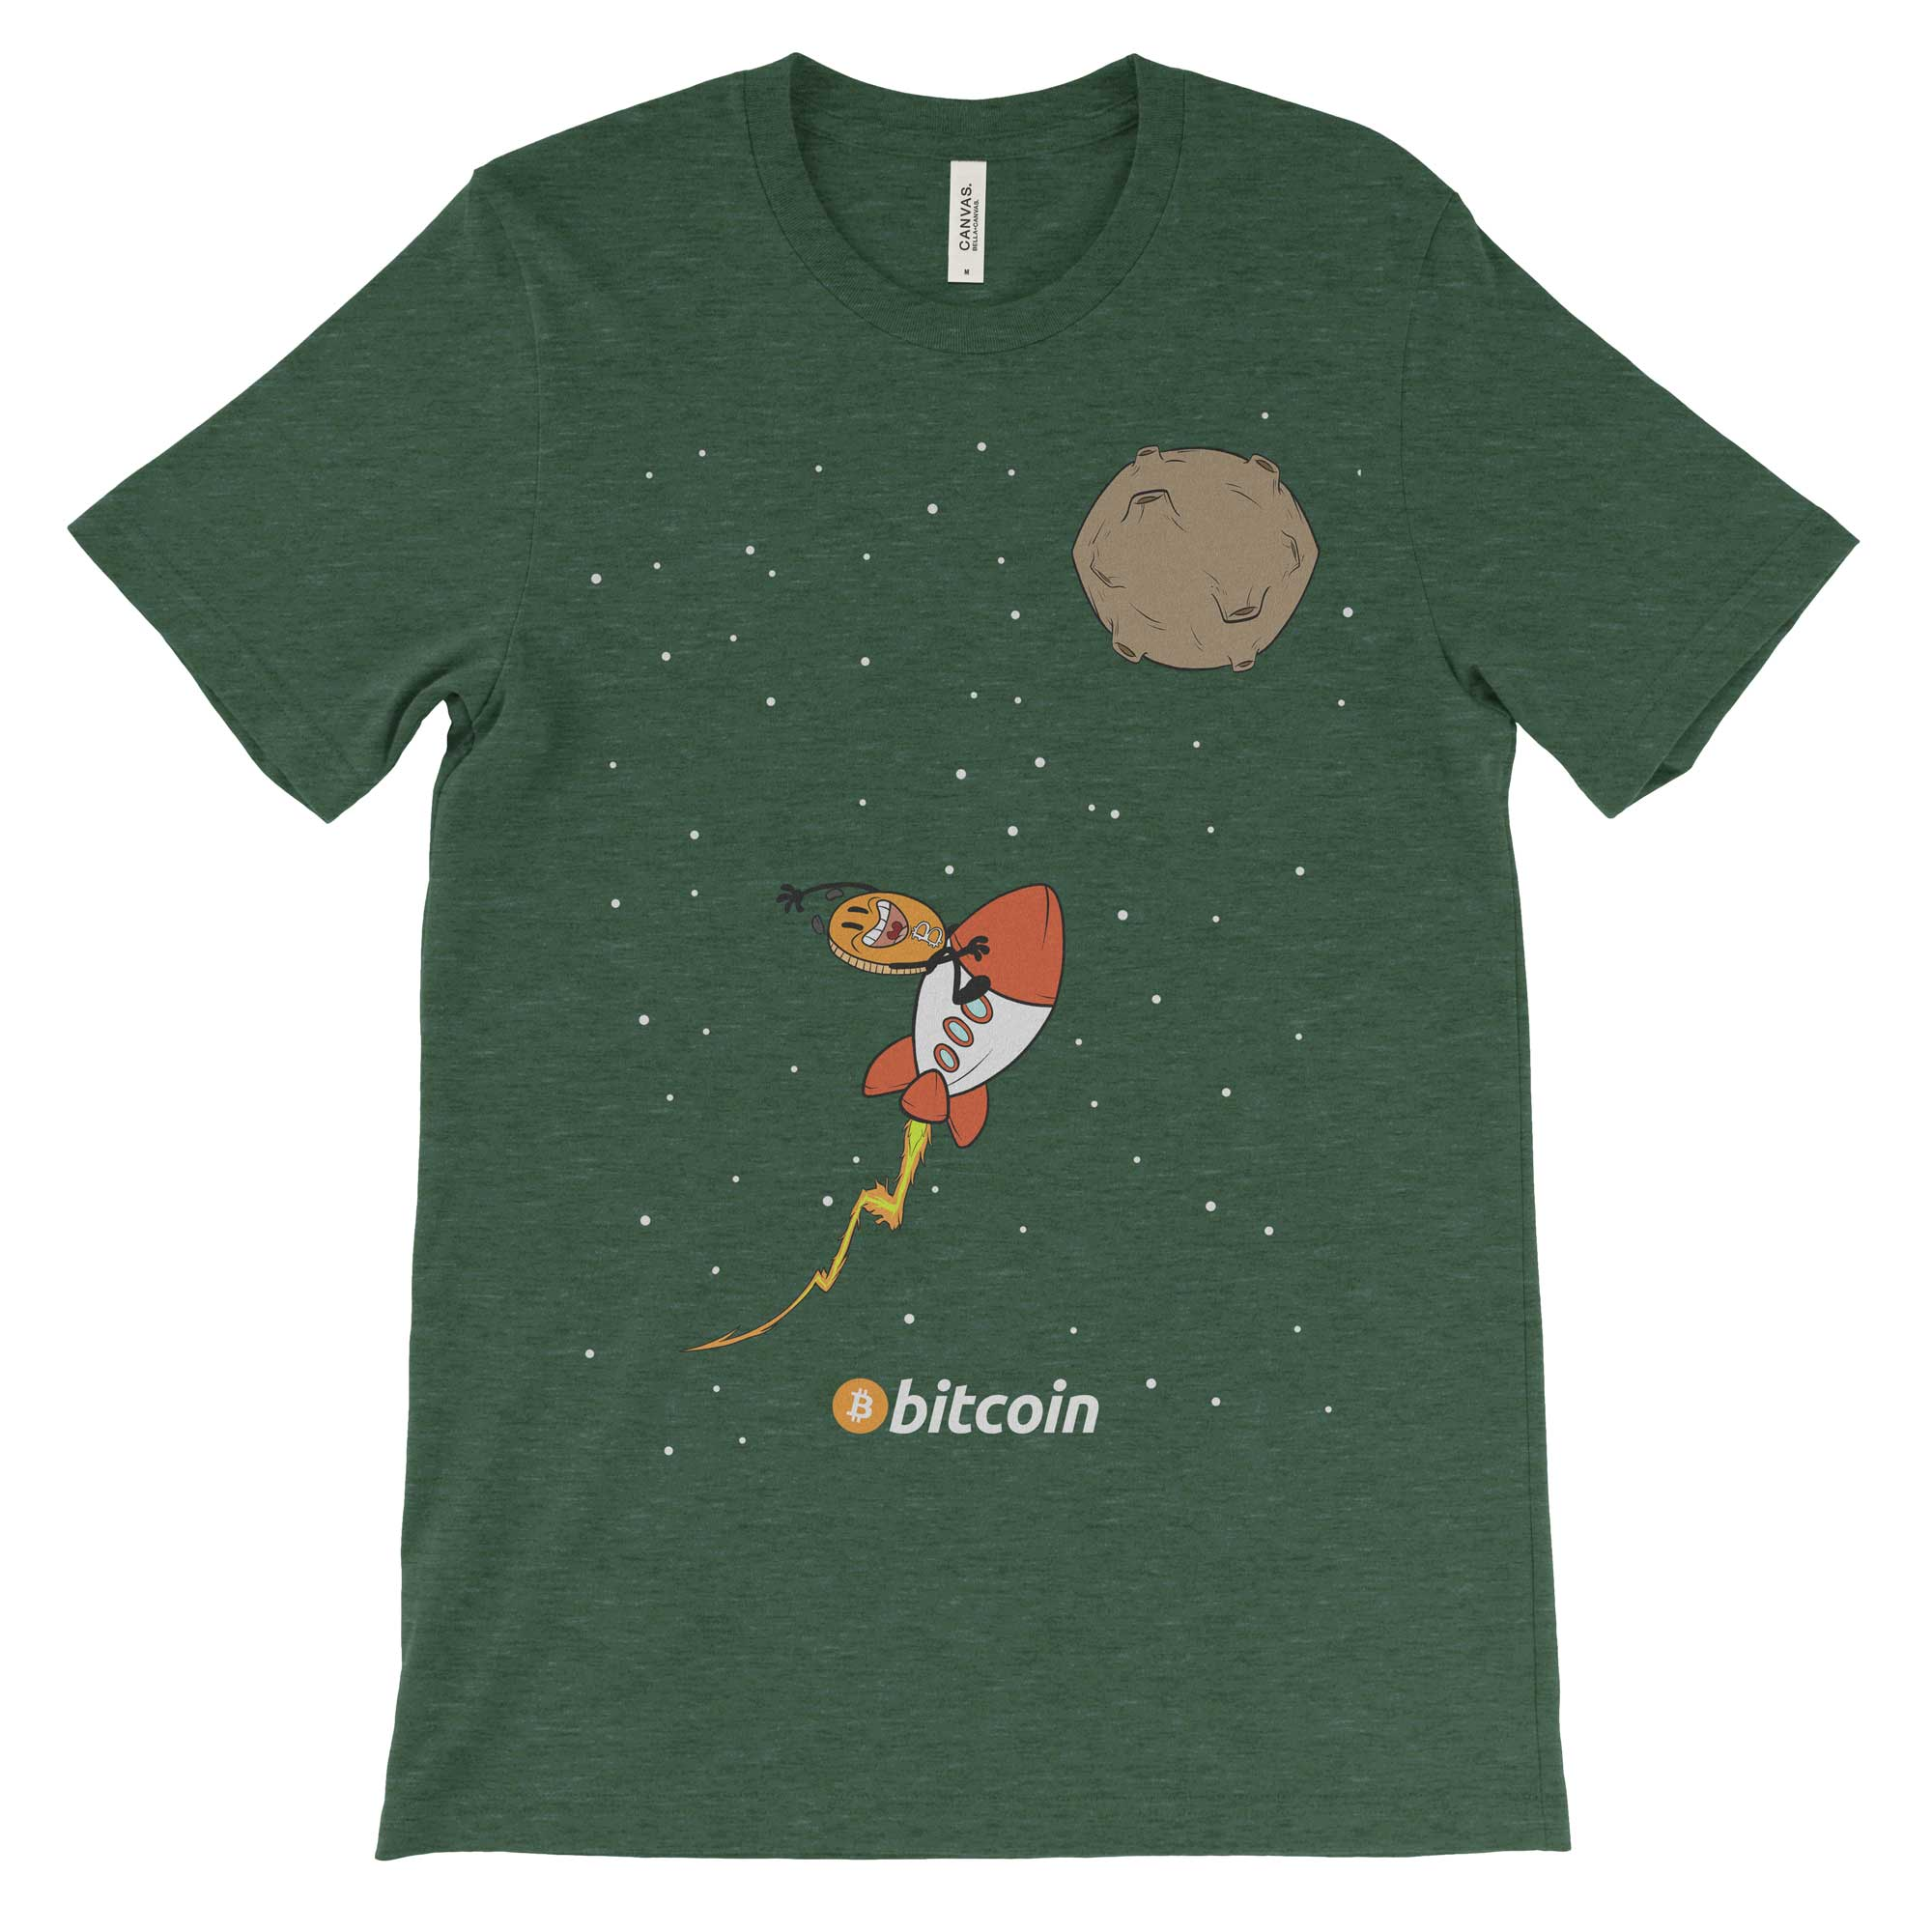 Rockets To The Moon: Bitcoin Rocket To The Moon Cryptocurrency T-Shirt